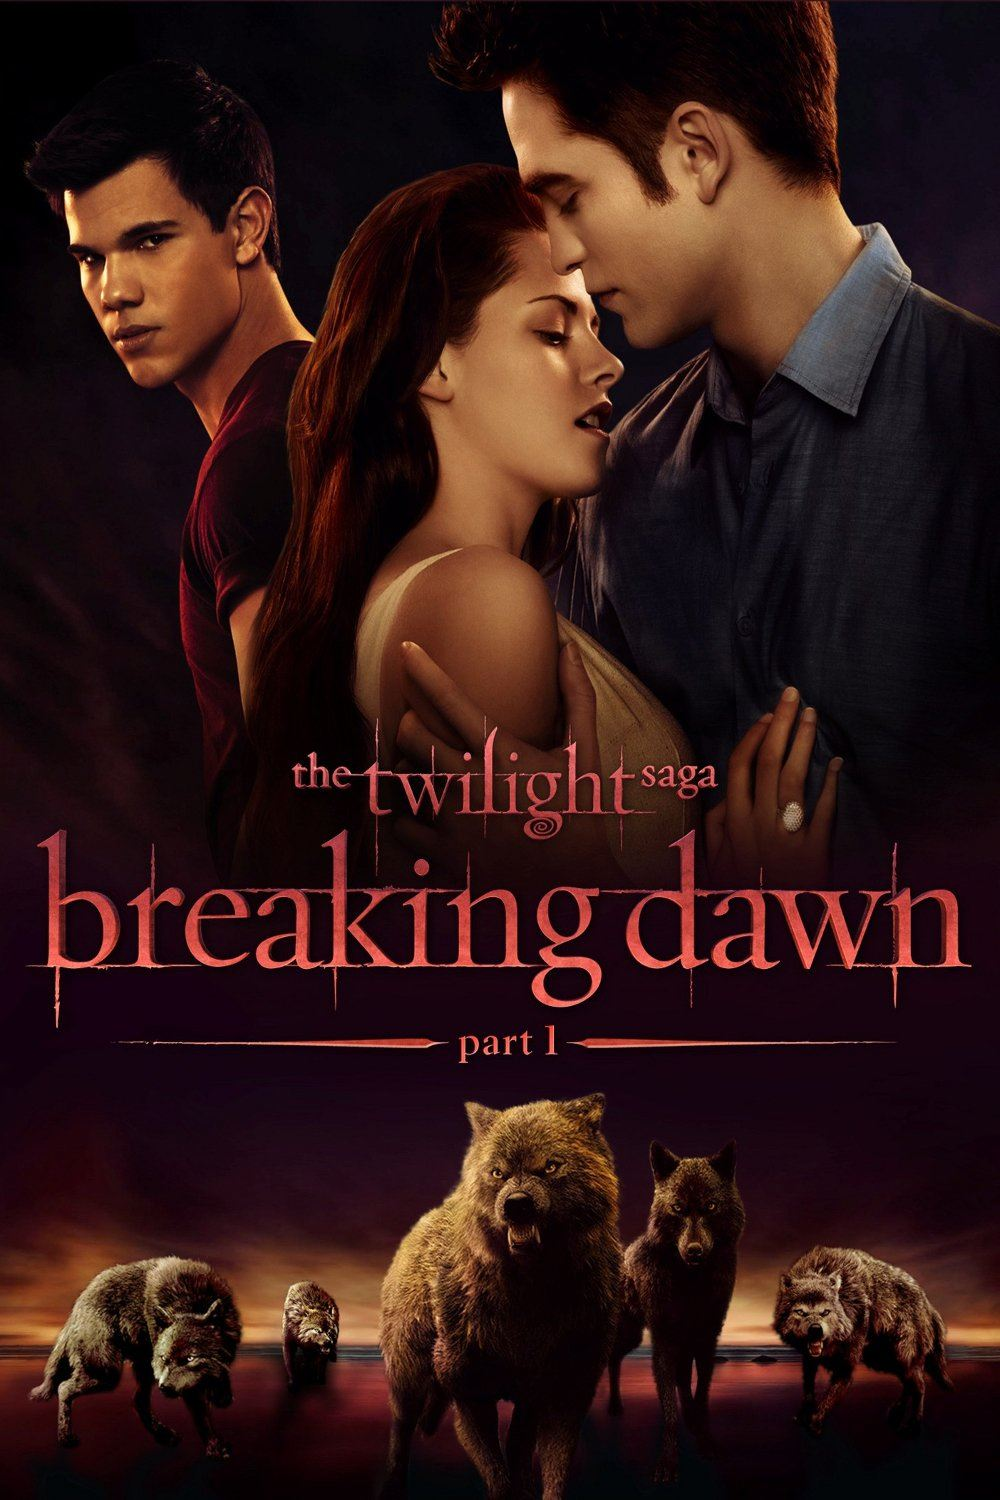 The-Twilight-Saga-Breaking-Dawn-Part 1